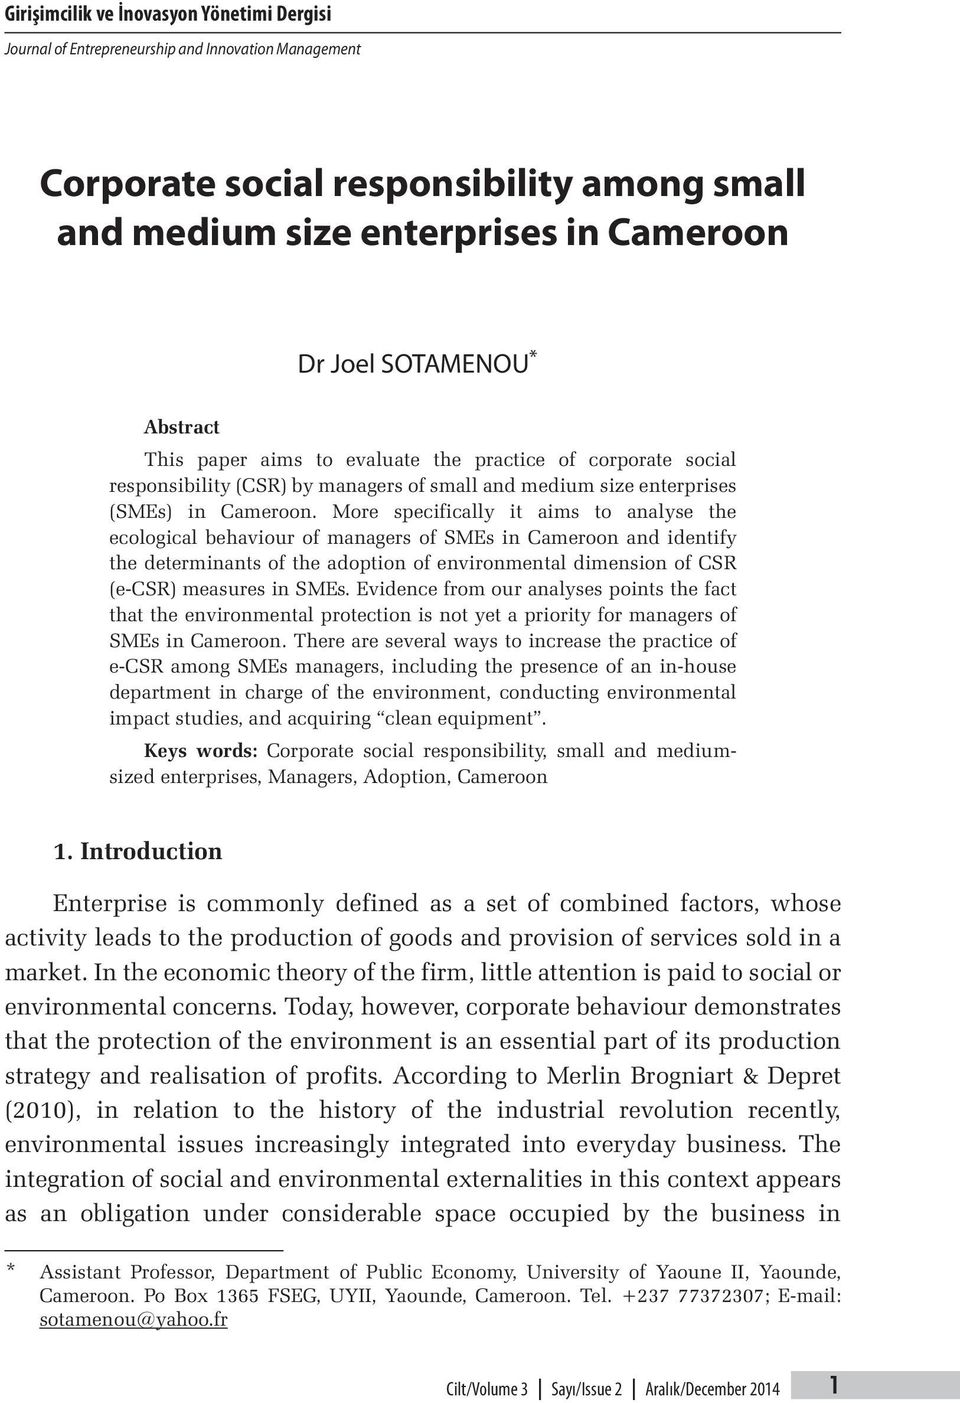 More specifically it aims to analyse the ecological behaviour of managers of SMEs in Cameroon and identify the determinants of the adoption of environmental dimension of CSR (e-csr) measures in SMEs.